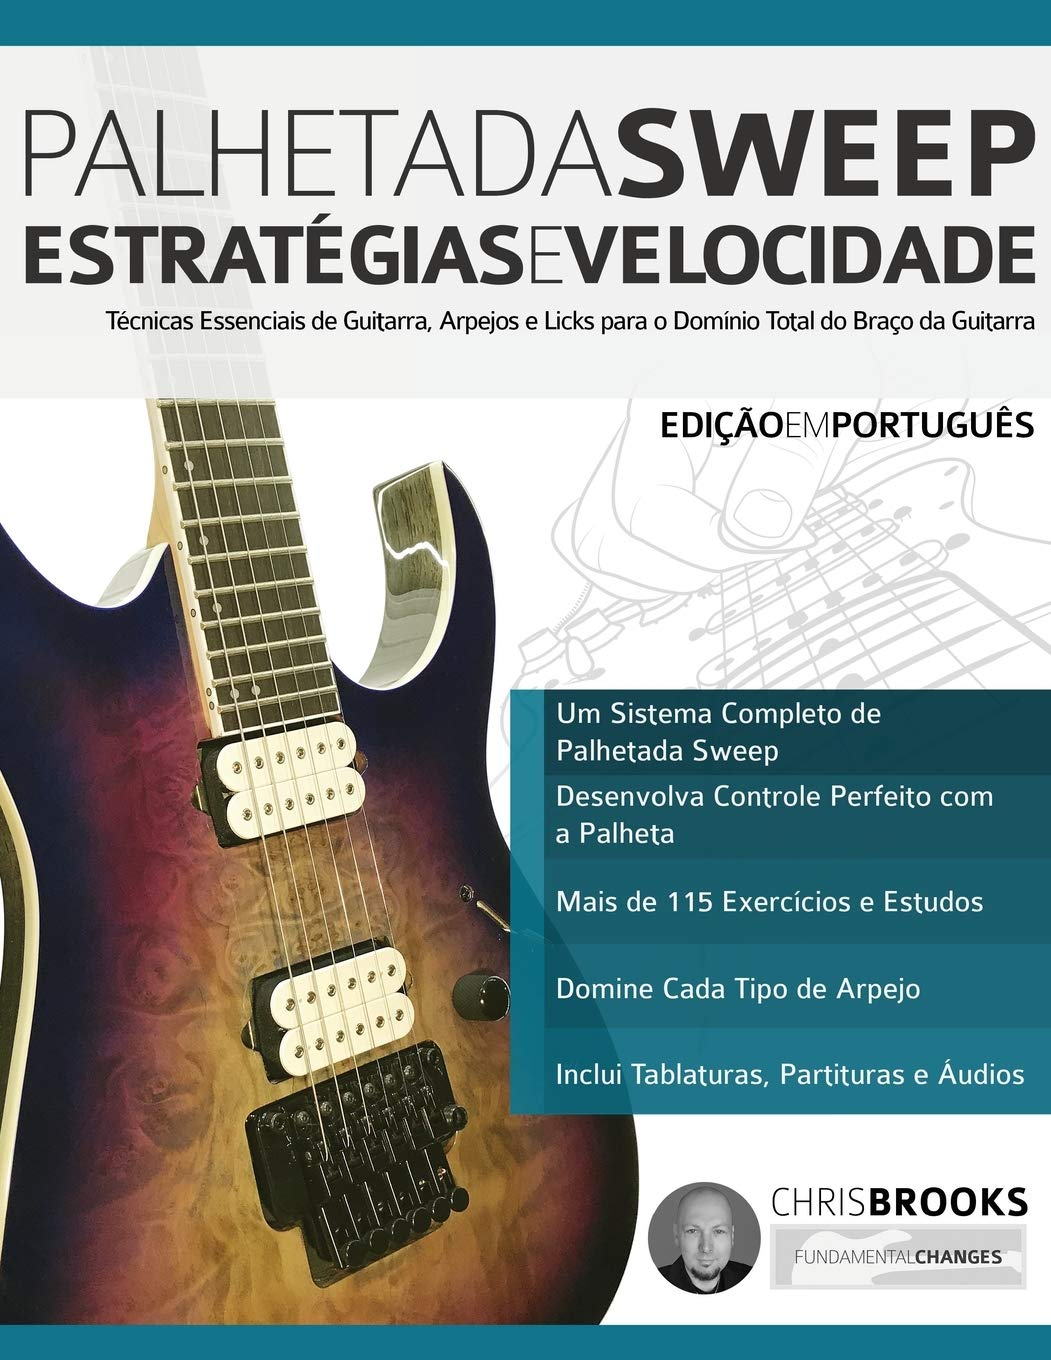 Palhetada Sweep – Estratégias e Velocidade: Técnicas Essenciais de Guitarra, Arpejos e Licks para o Domínio Total do Braço da Guitarra Guitarra de Rock Moderna: Amazon.es: Brooks, Mr Chris, Alexander, Mr Joseph: